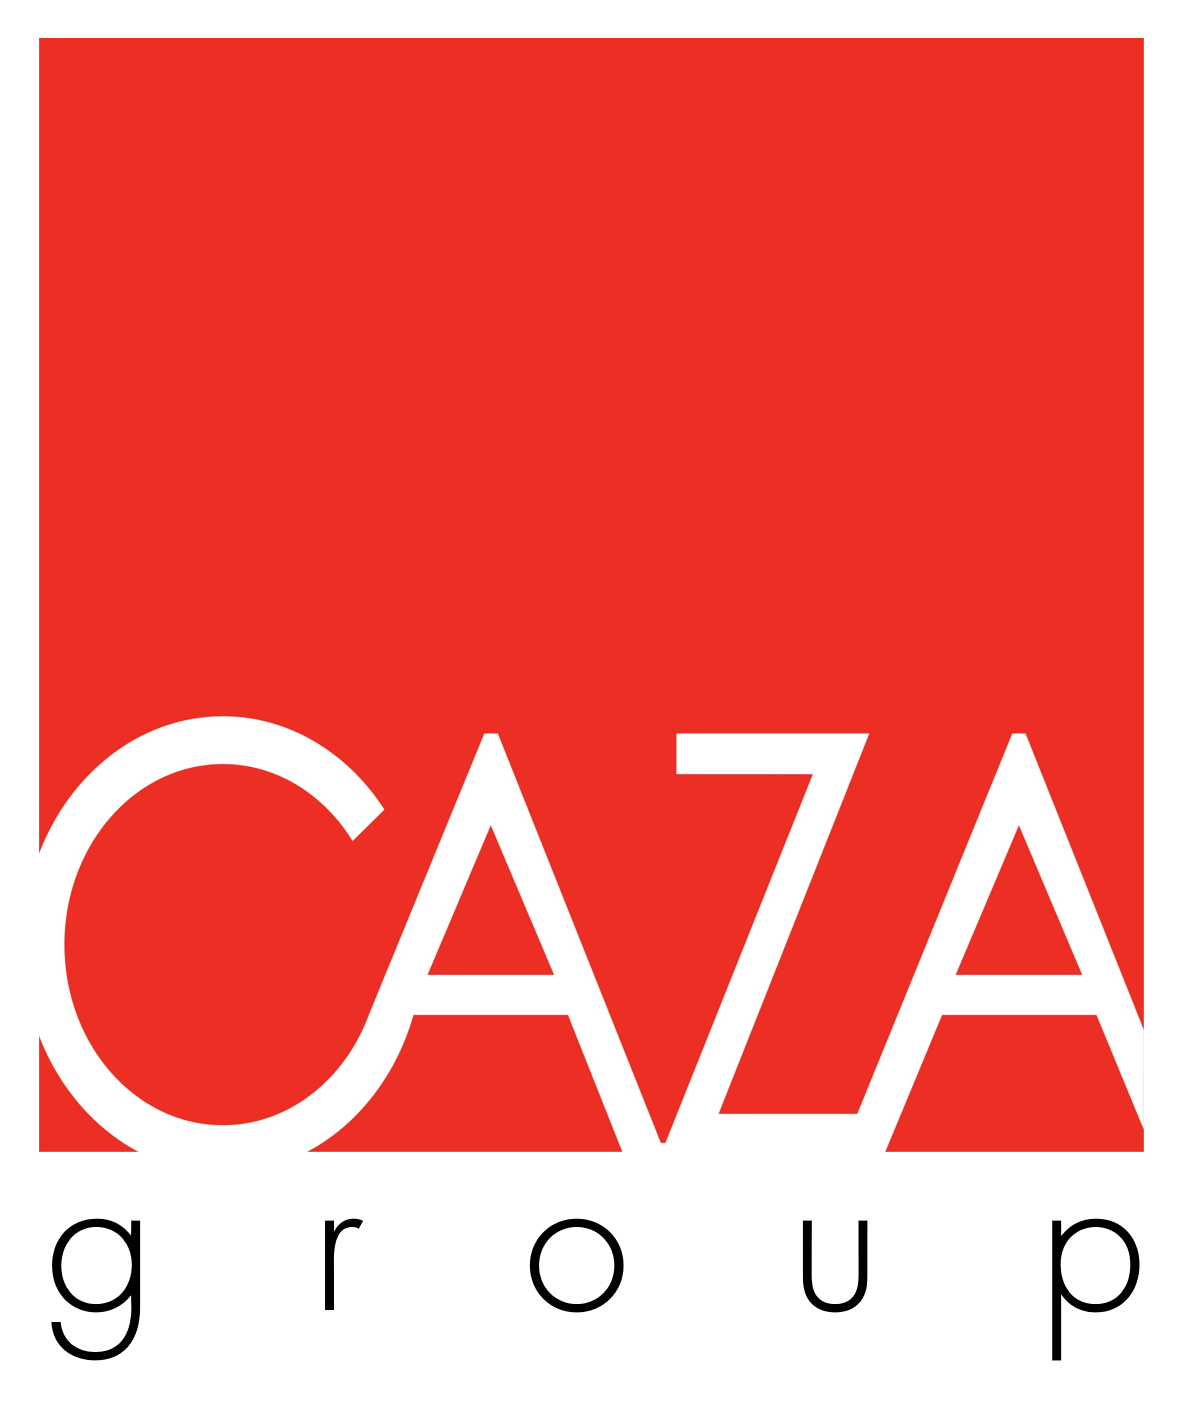 The CAZA Group logo